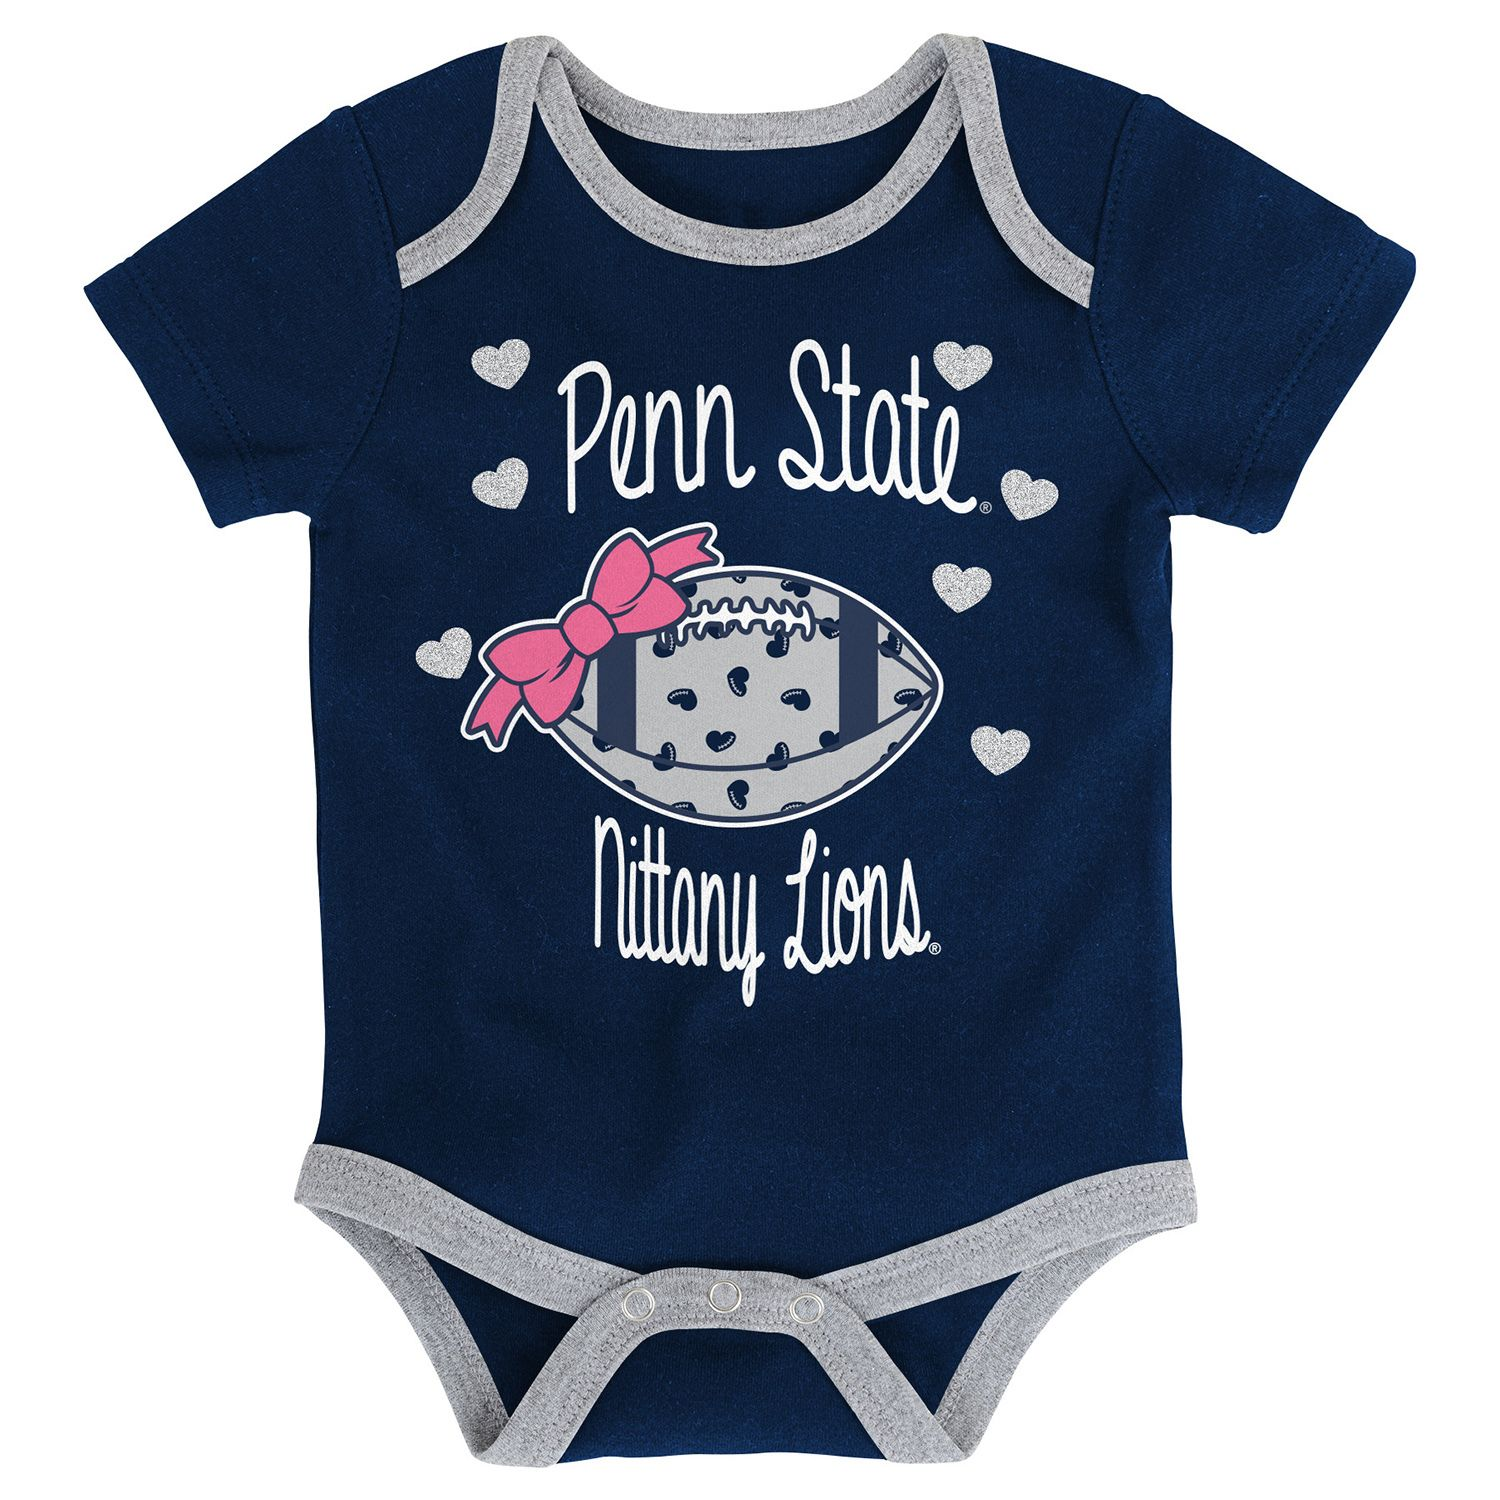 NCAA Penn State Sports Fan Clothing